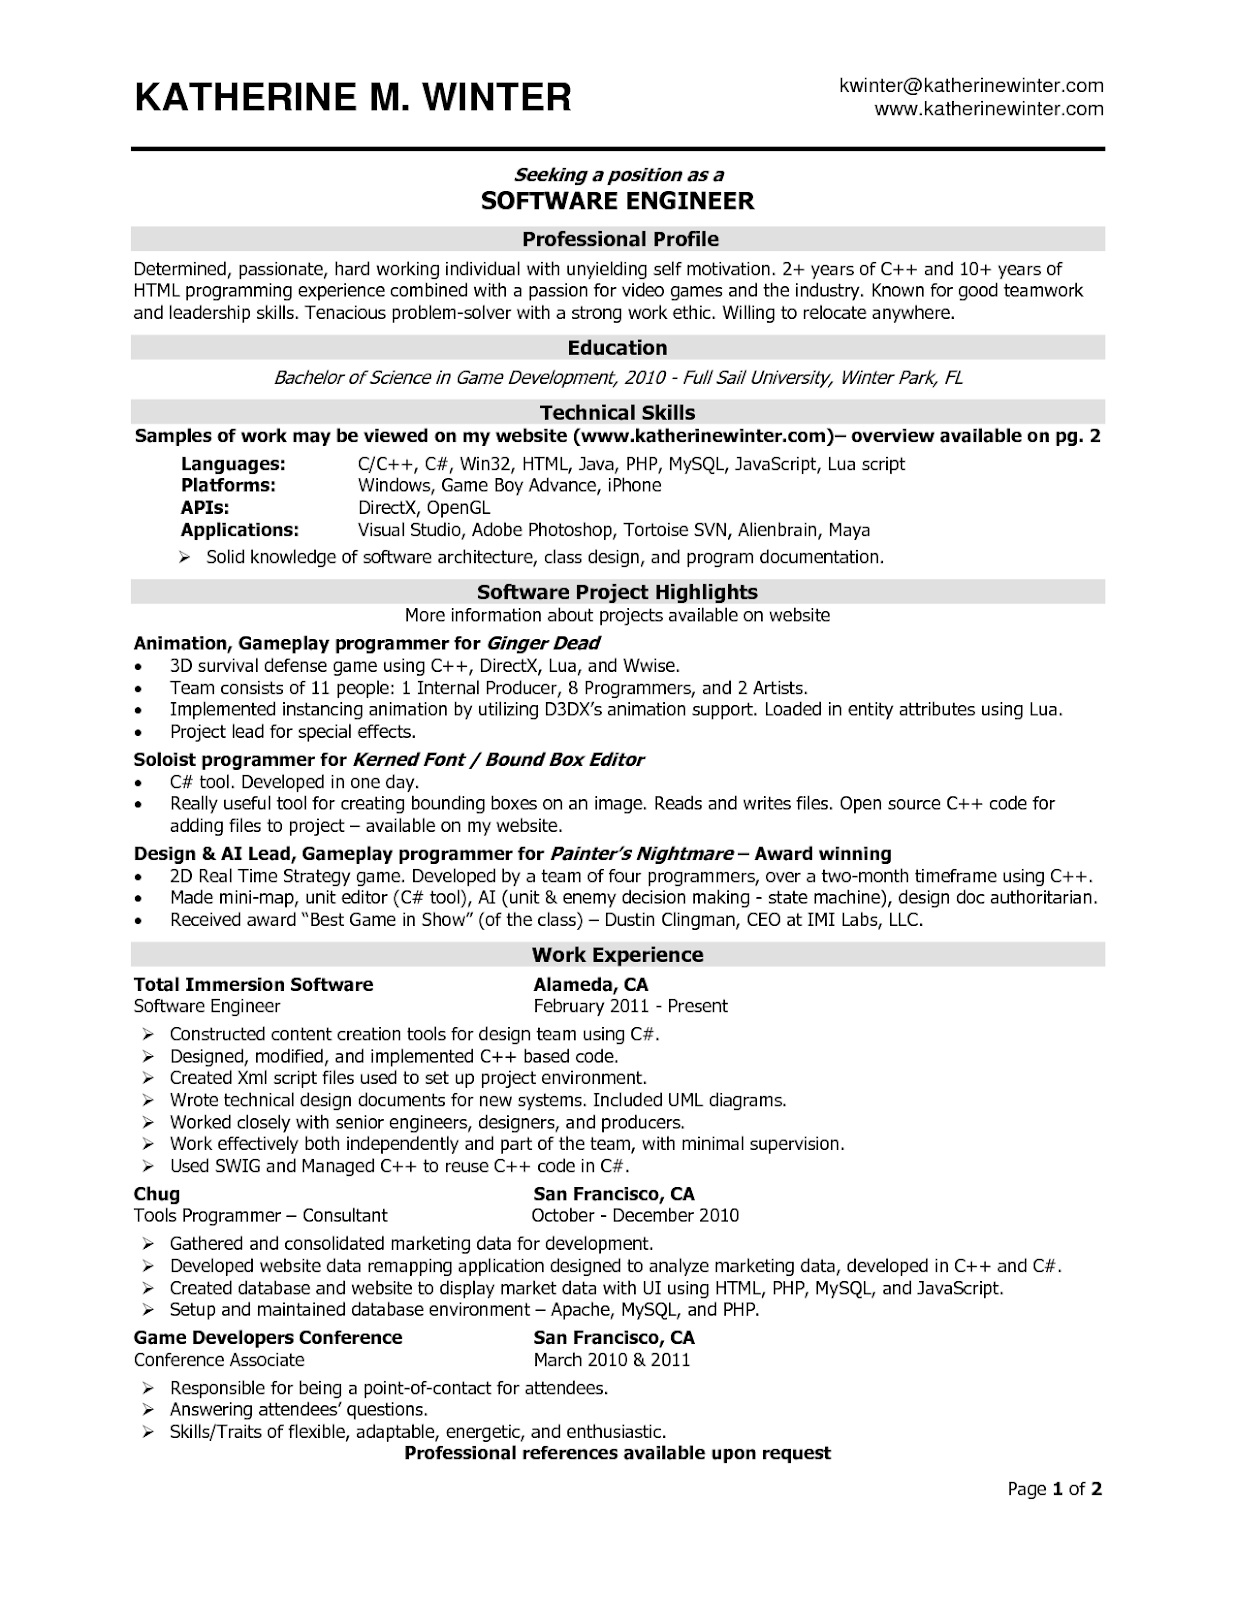 software engineer sample resume software engineer resume samples sample resumes software engineer sample resume 1214 network